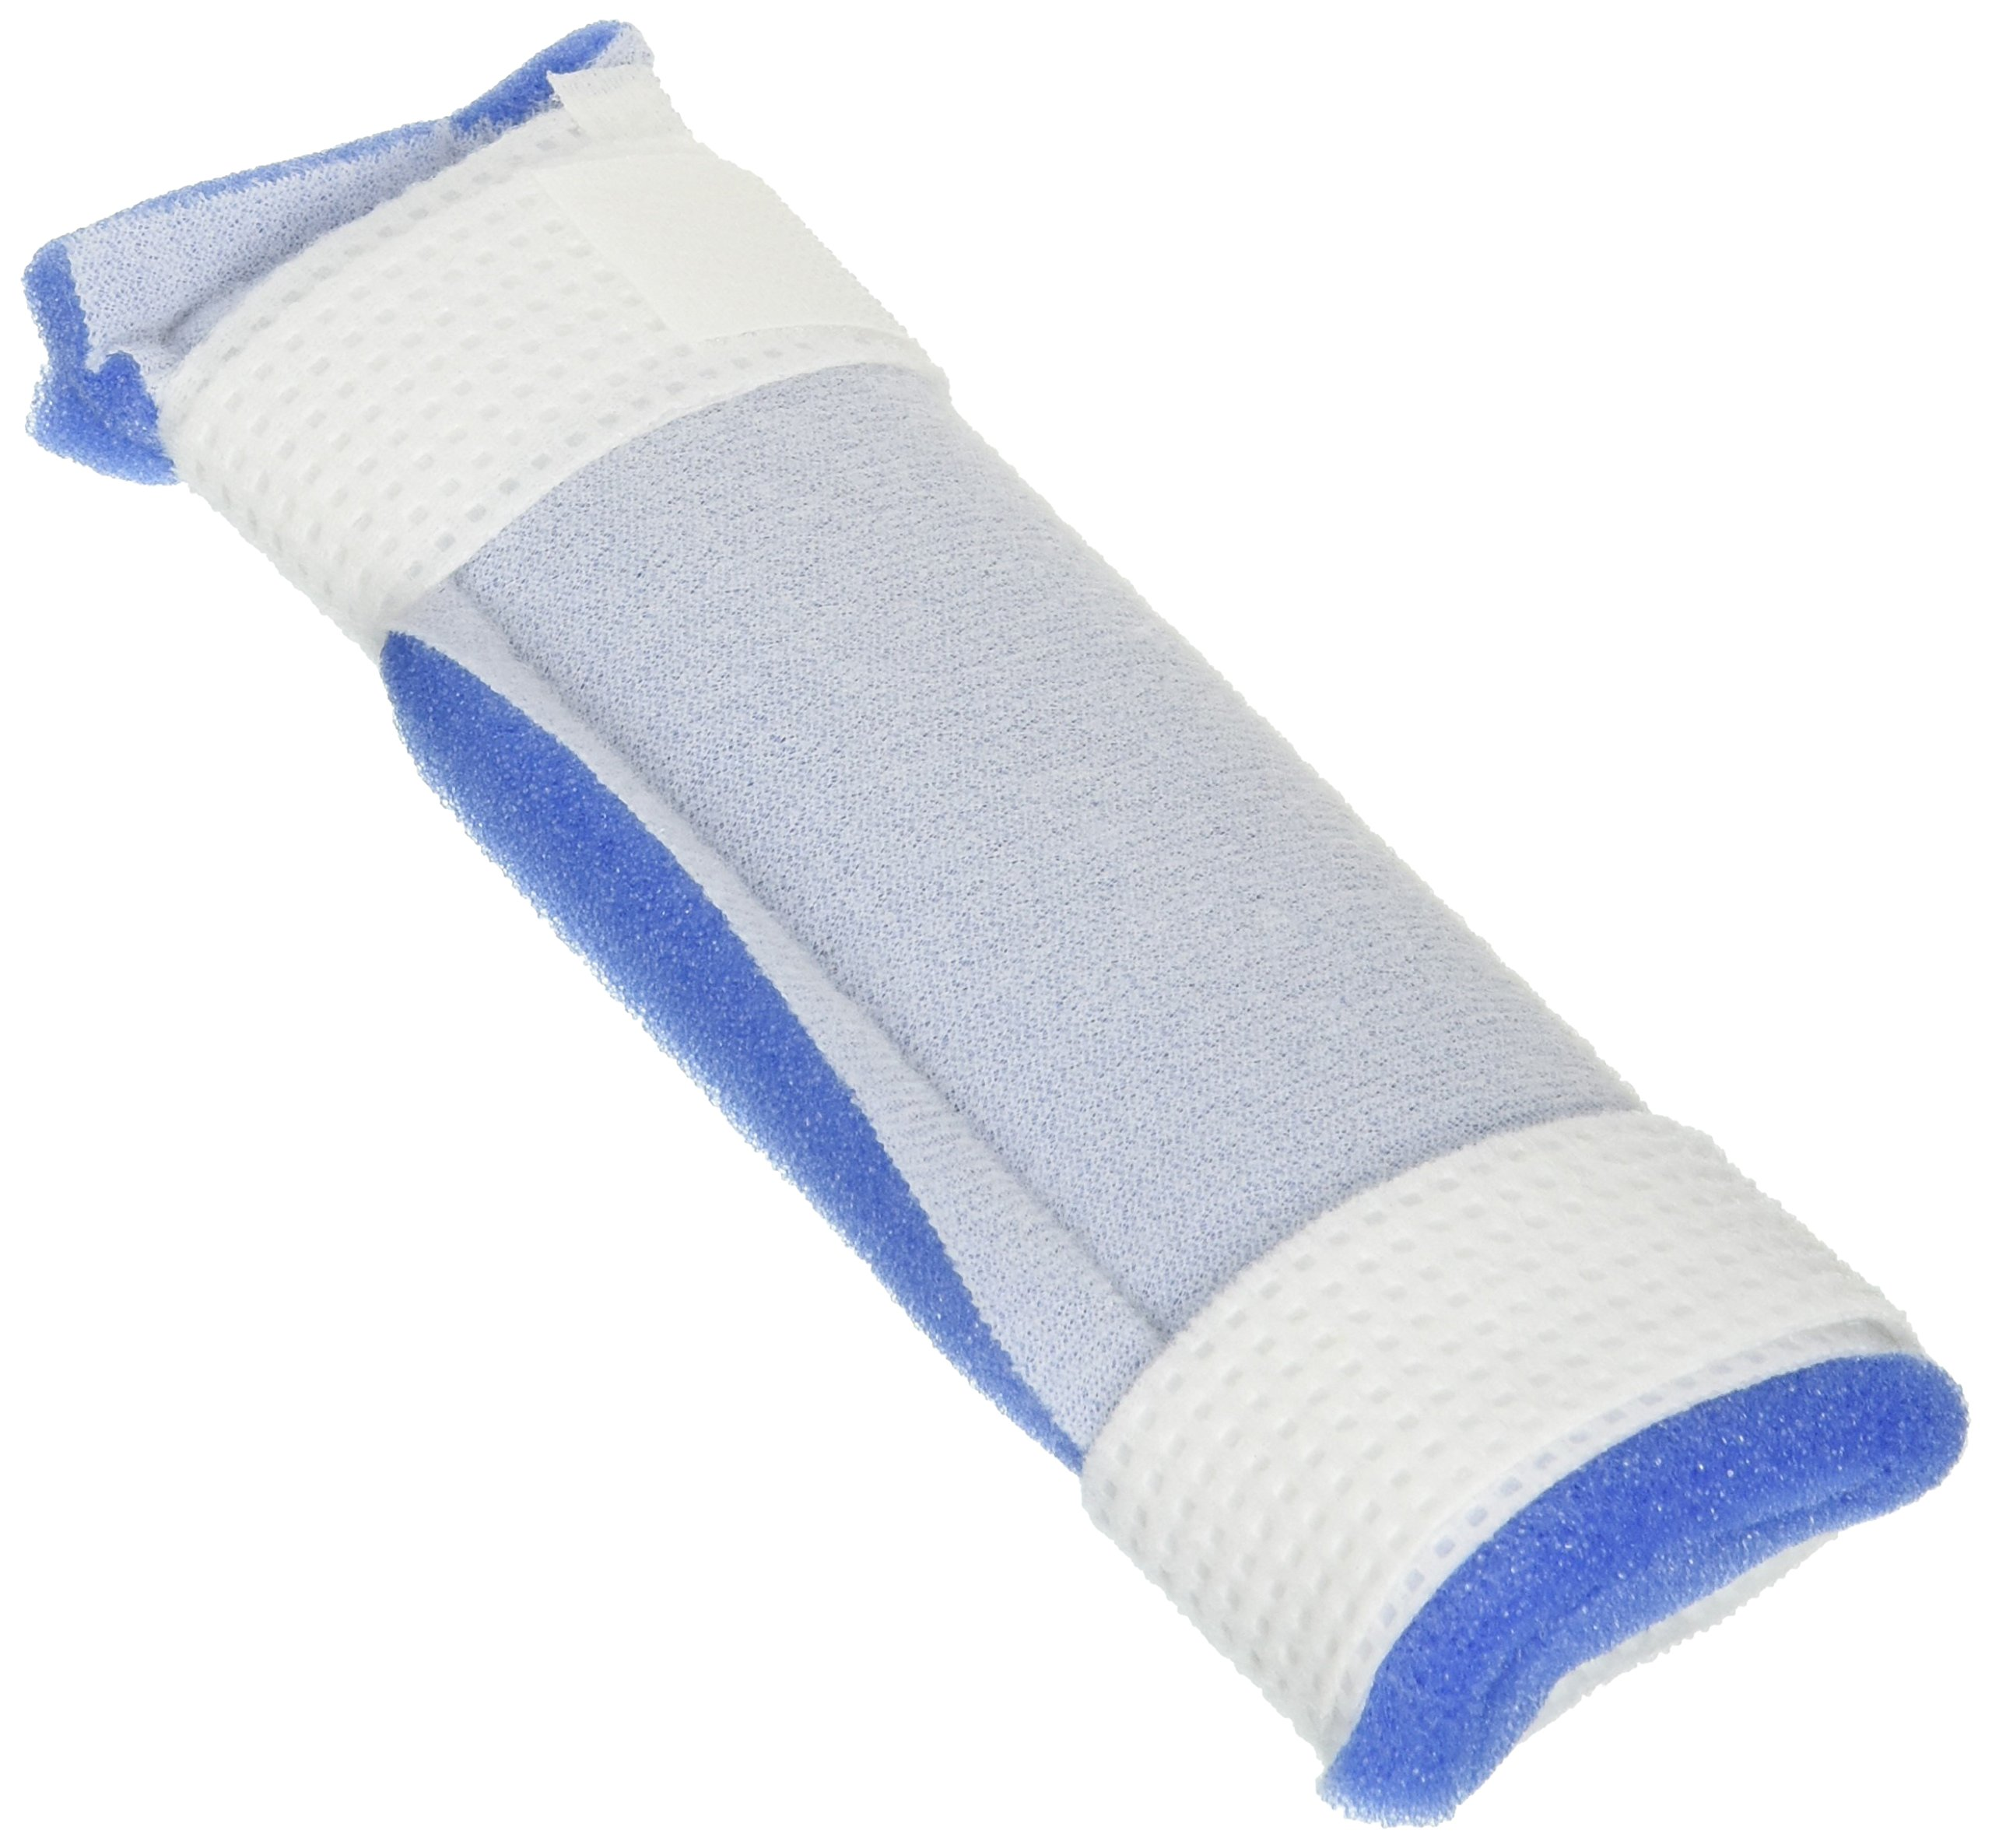 Halyard Health 29967 Iv Support, Infant/Child, 6.25'' Length x 2'' Width (Pack of 2)